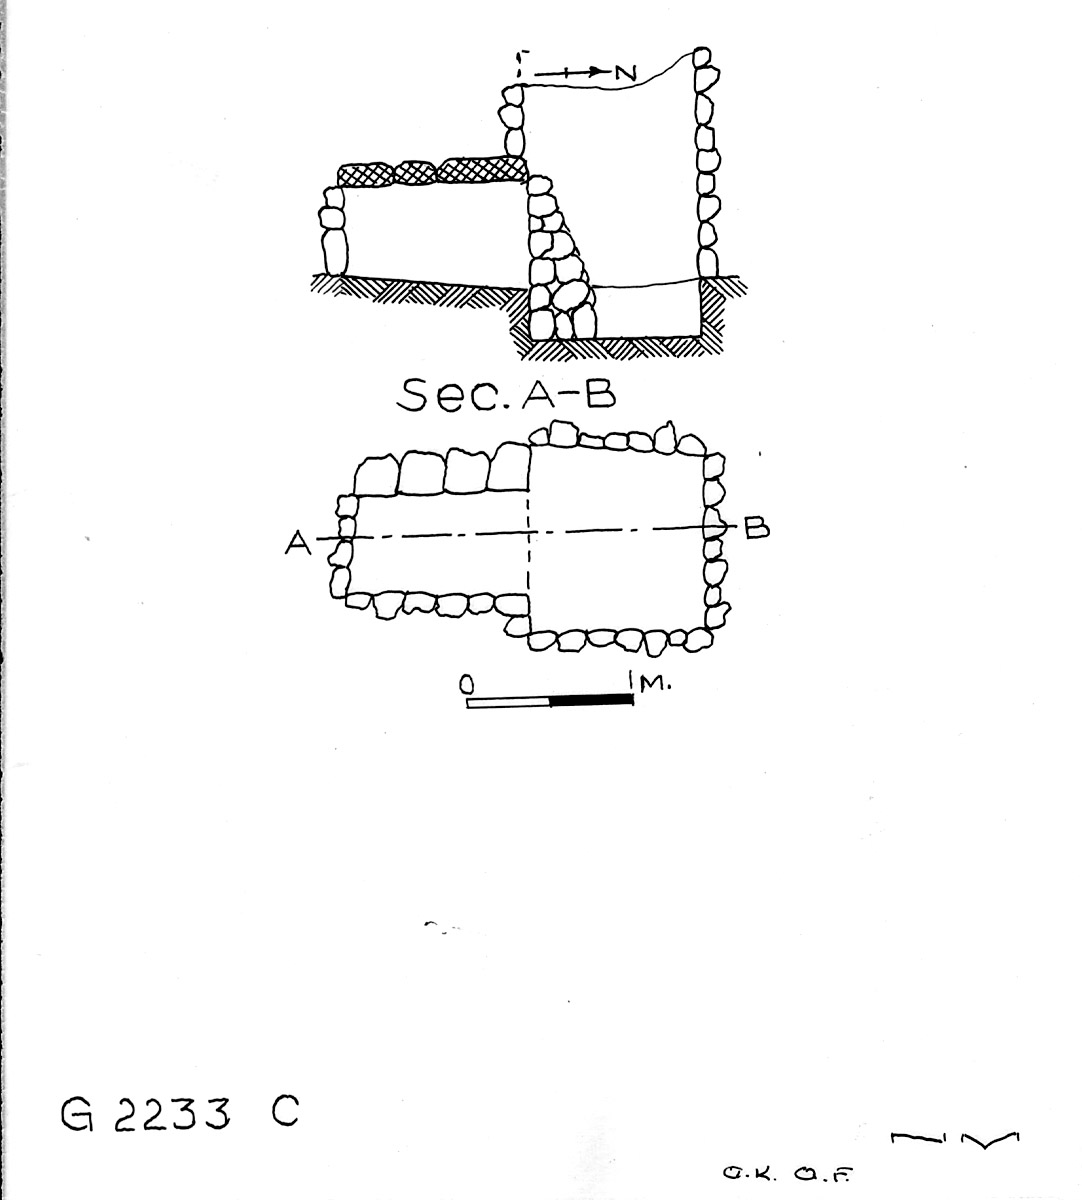 Maps and plans: G 2233, Shaft C